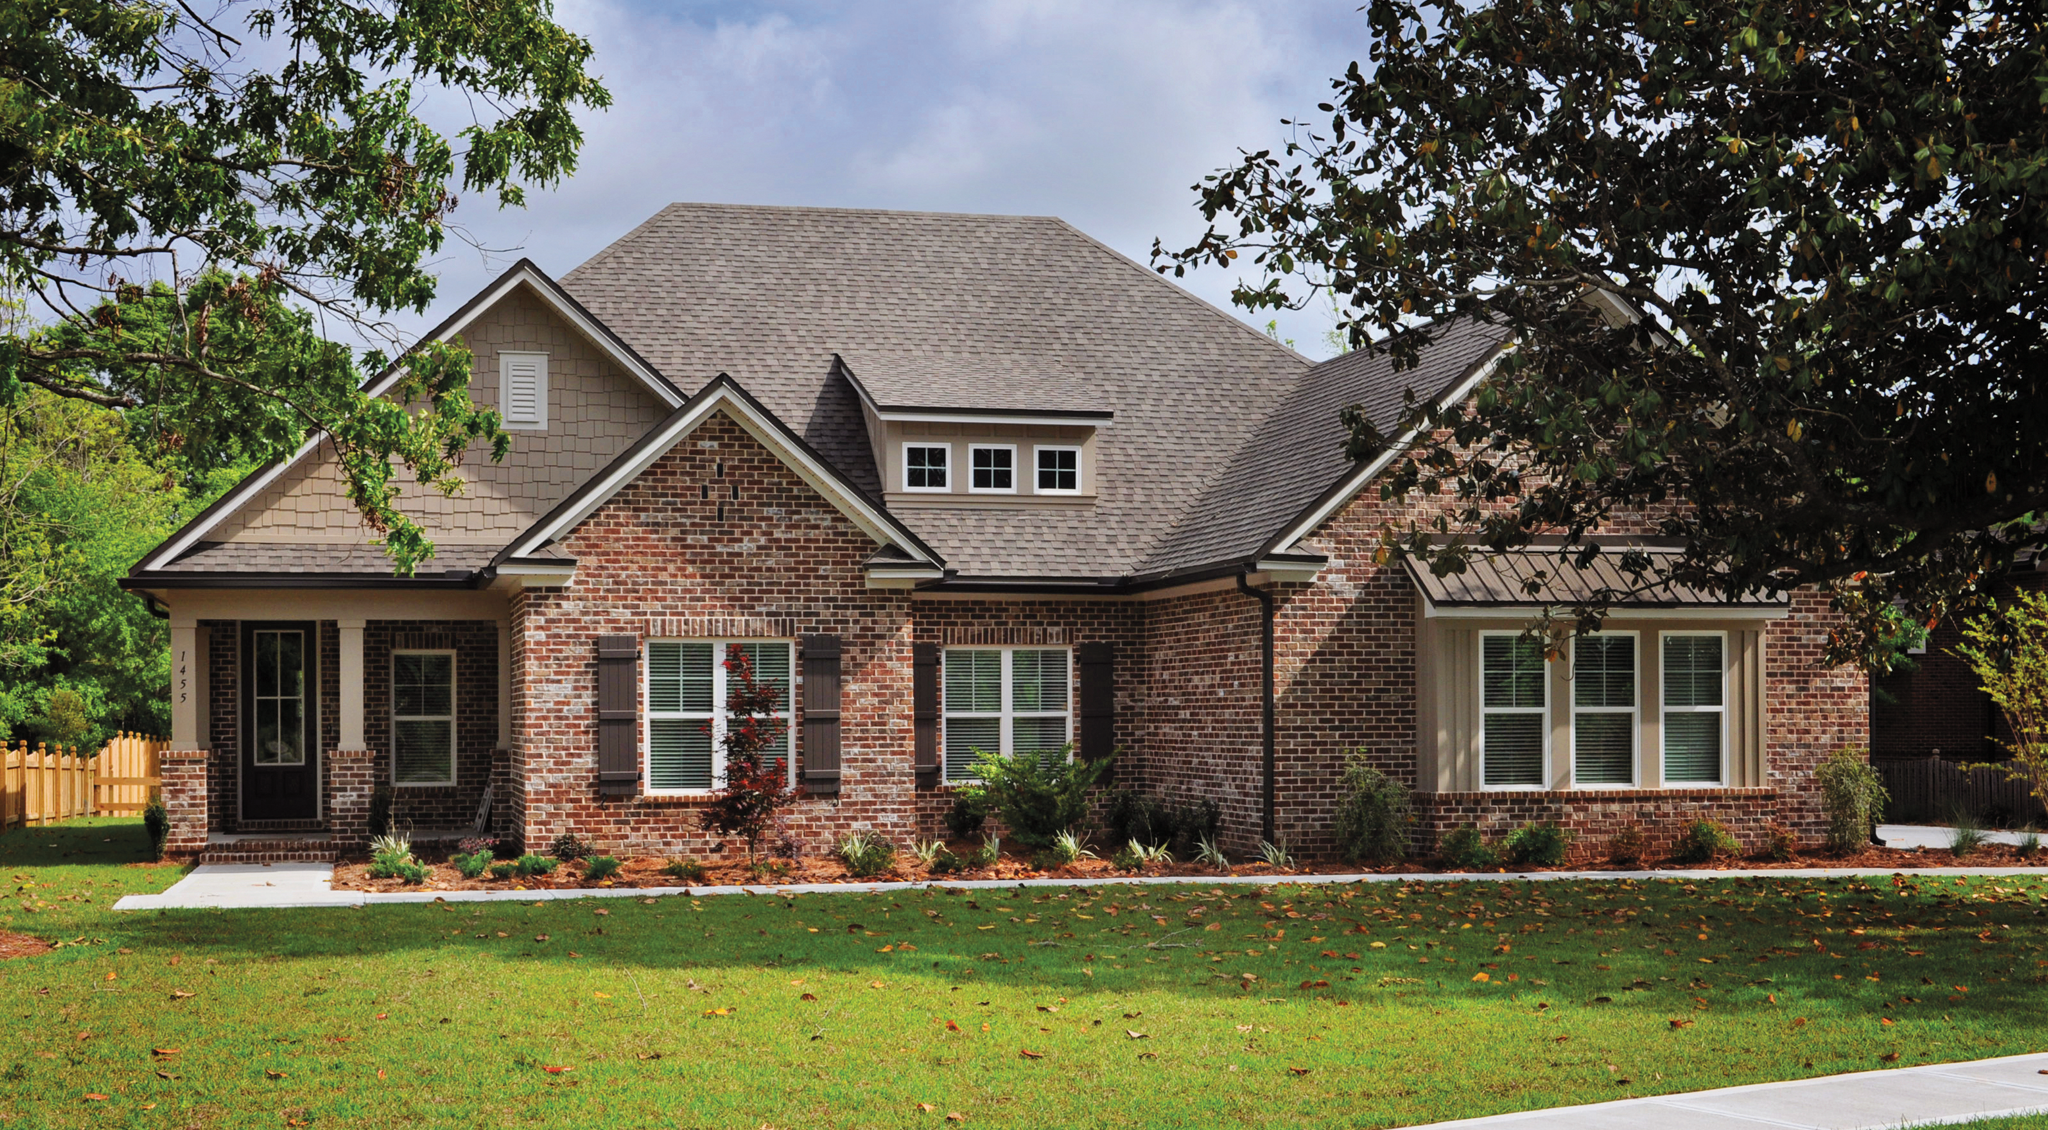 Exterior red brick home in Mill Creek Farms